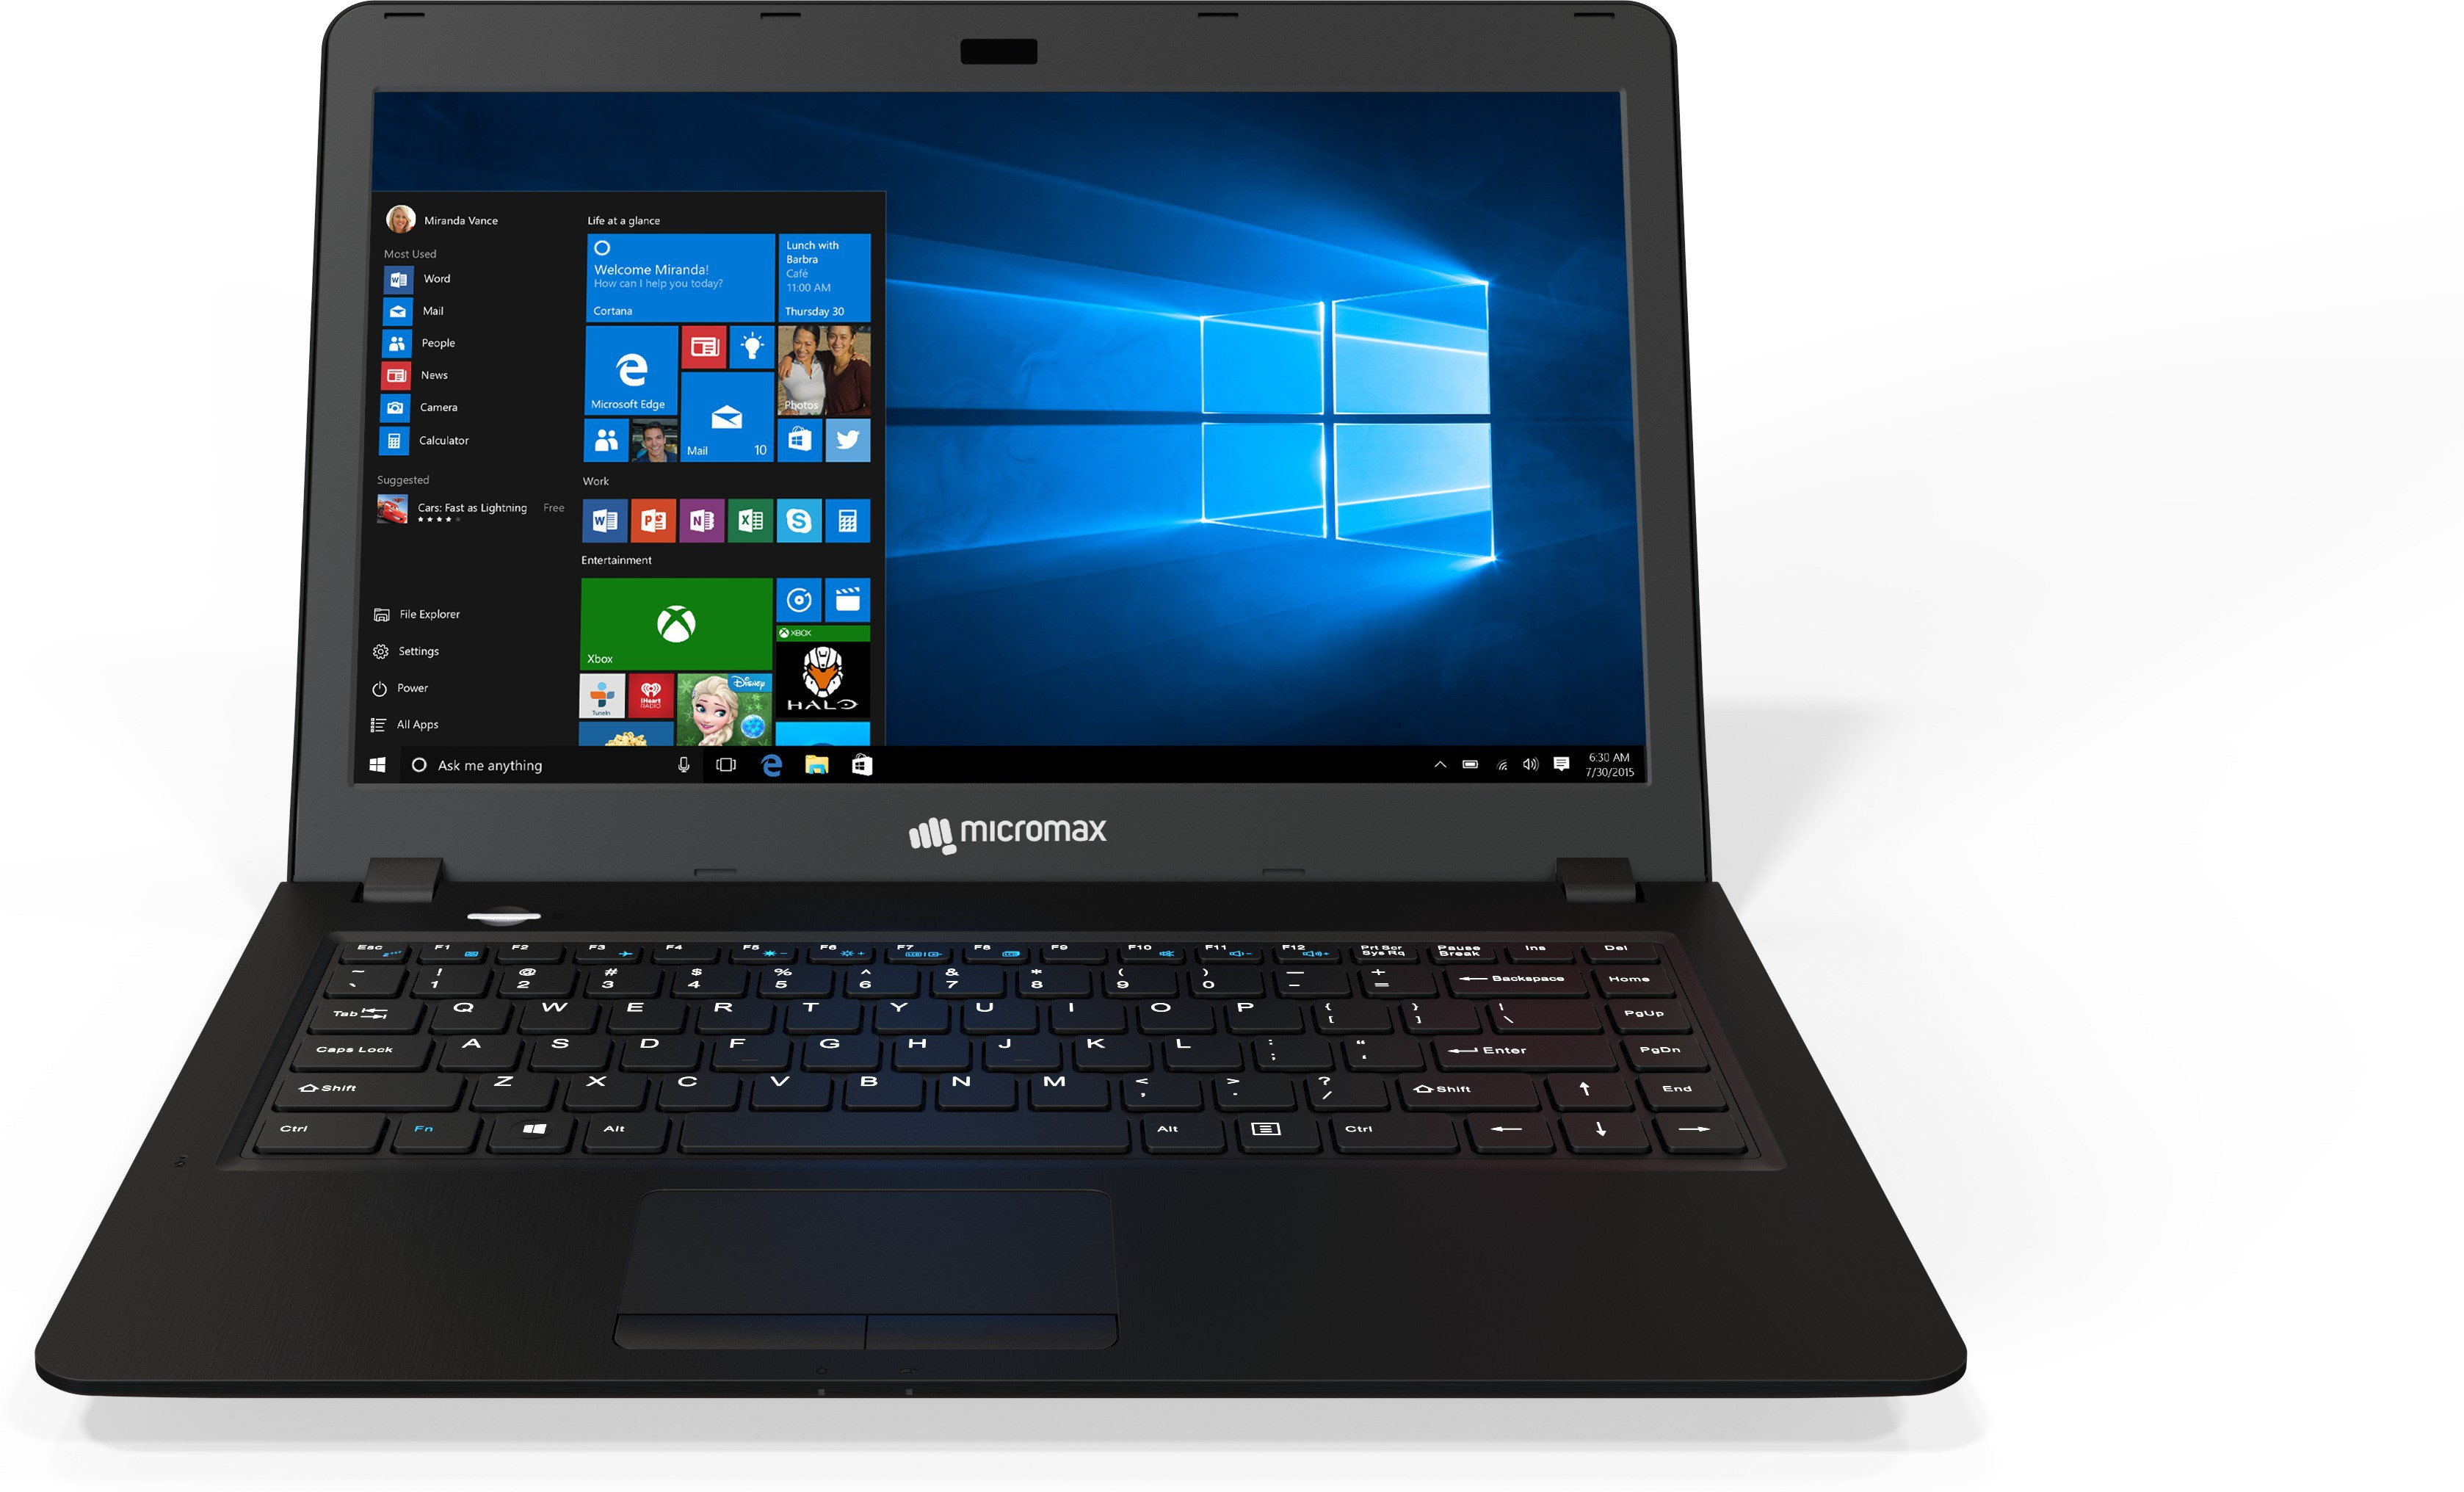 Deals - Raipur - From ₹16990 <br> Micromax Budget Laptops<br> Category - computers<br> Business - Flipkart.com